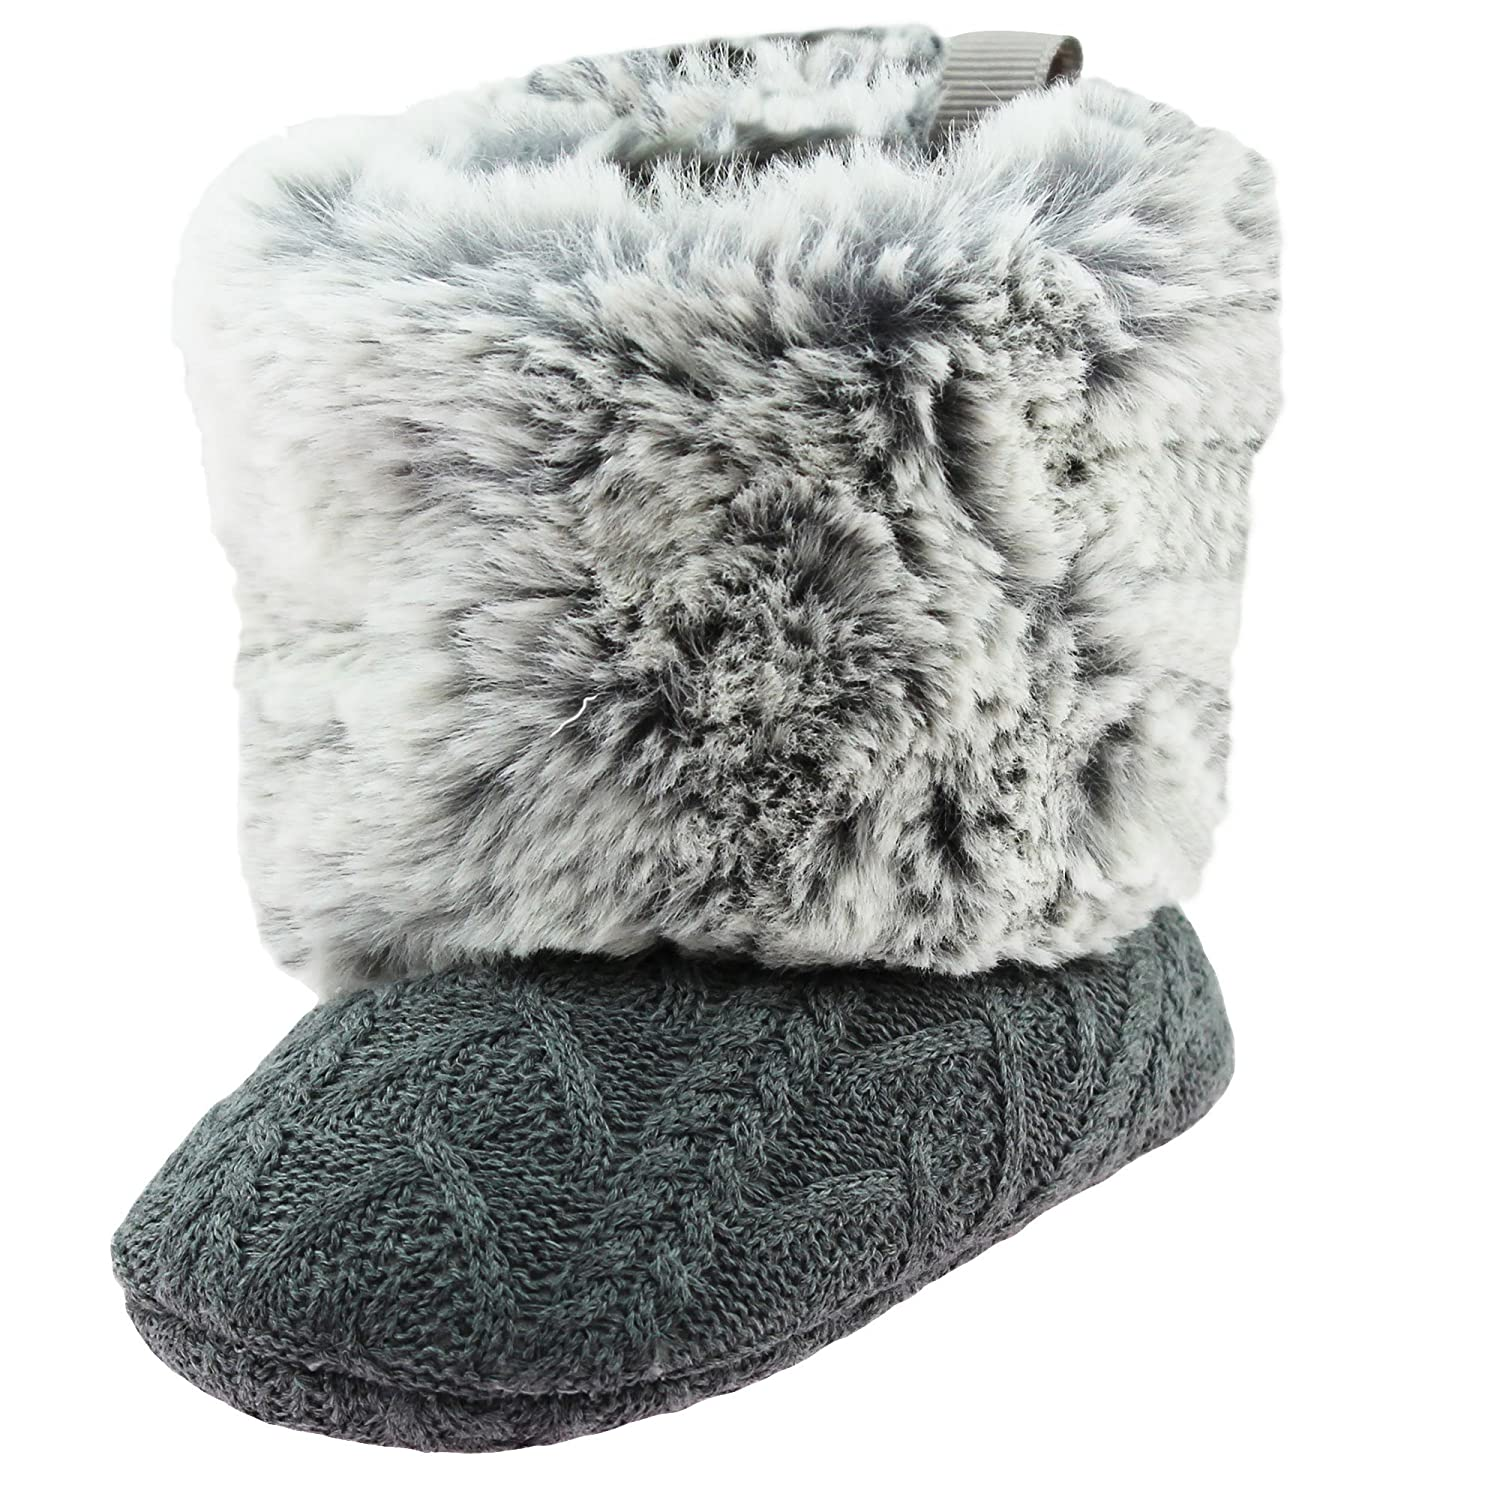 Stepping Stones Cable Knit Soft Sole Baby Boots with Faux Fur Tops Baby Girls Crib Shoes